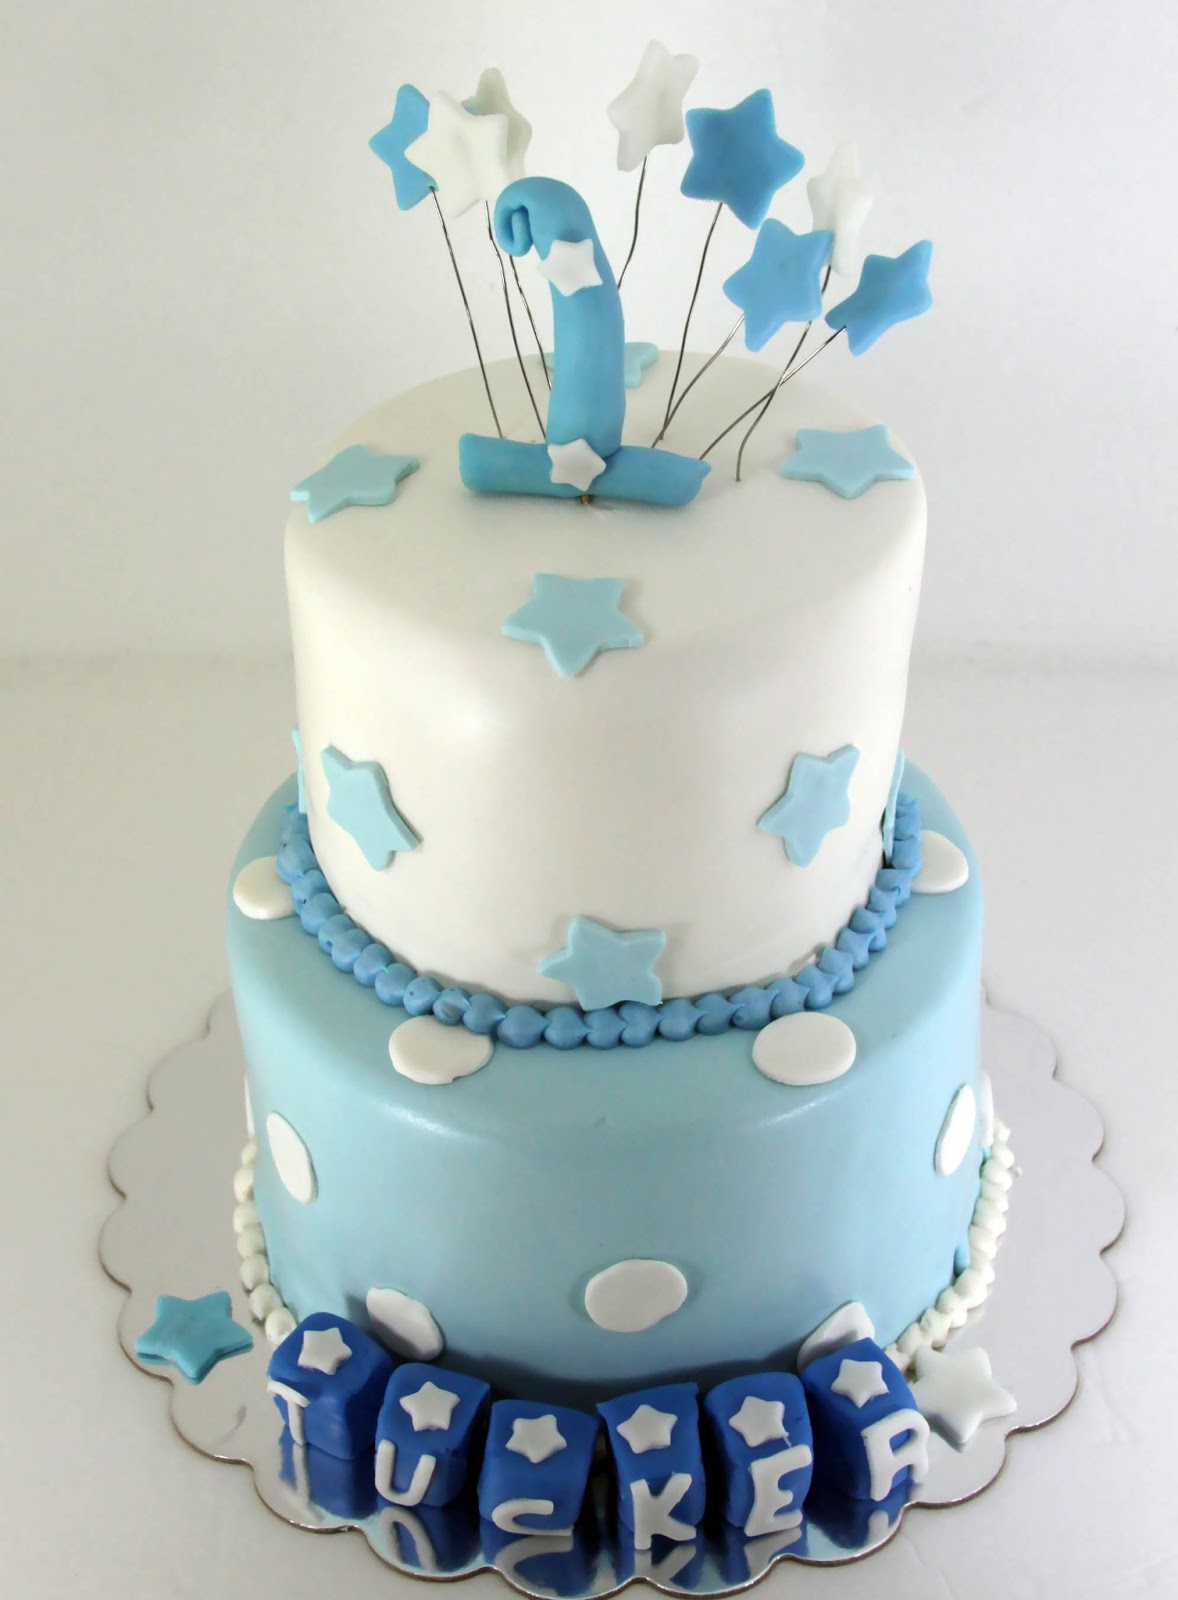 Bday Cake Images For Baby Boy : Tastefully Done: Baby Boy Blue 1st Birthday Cake